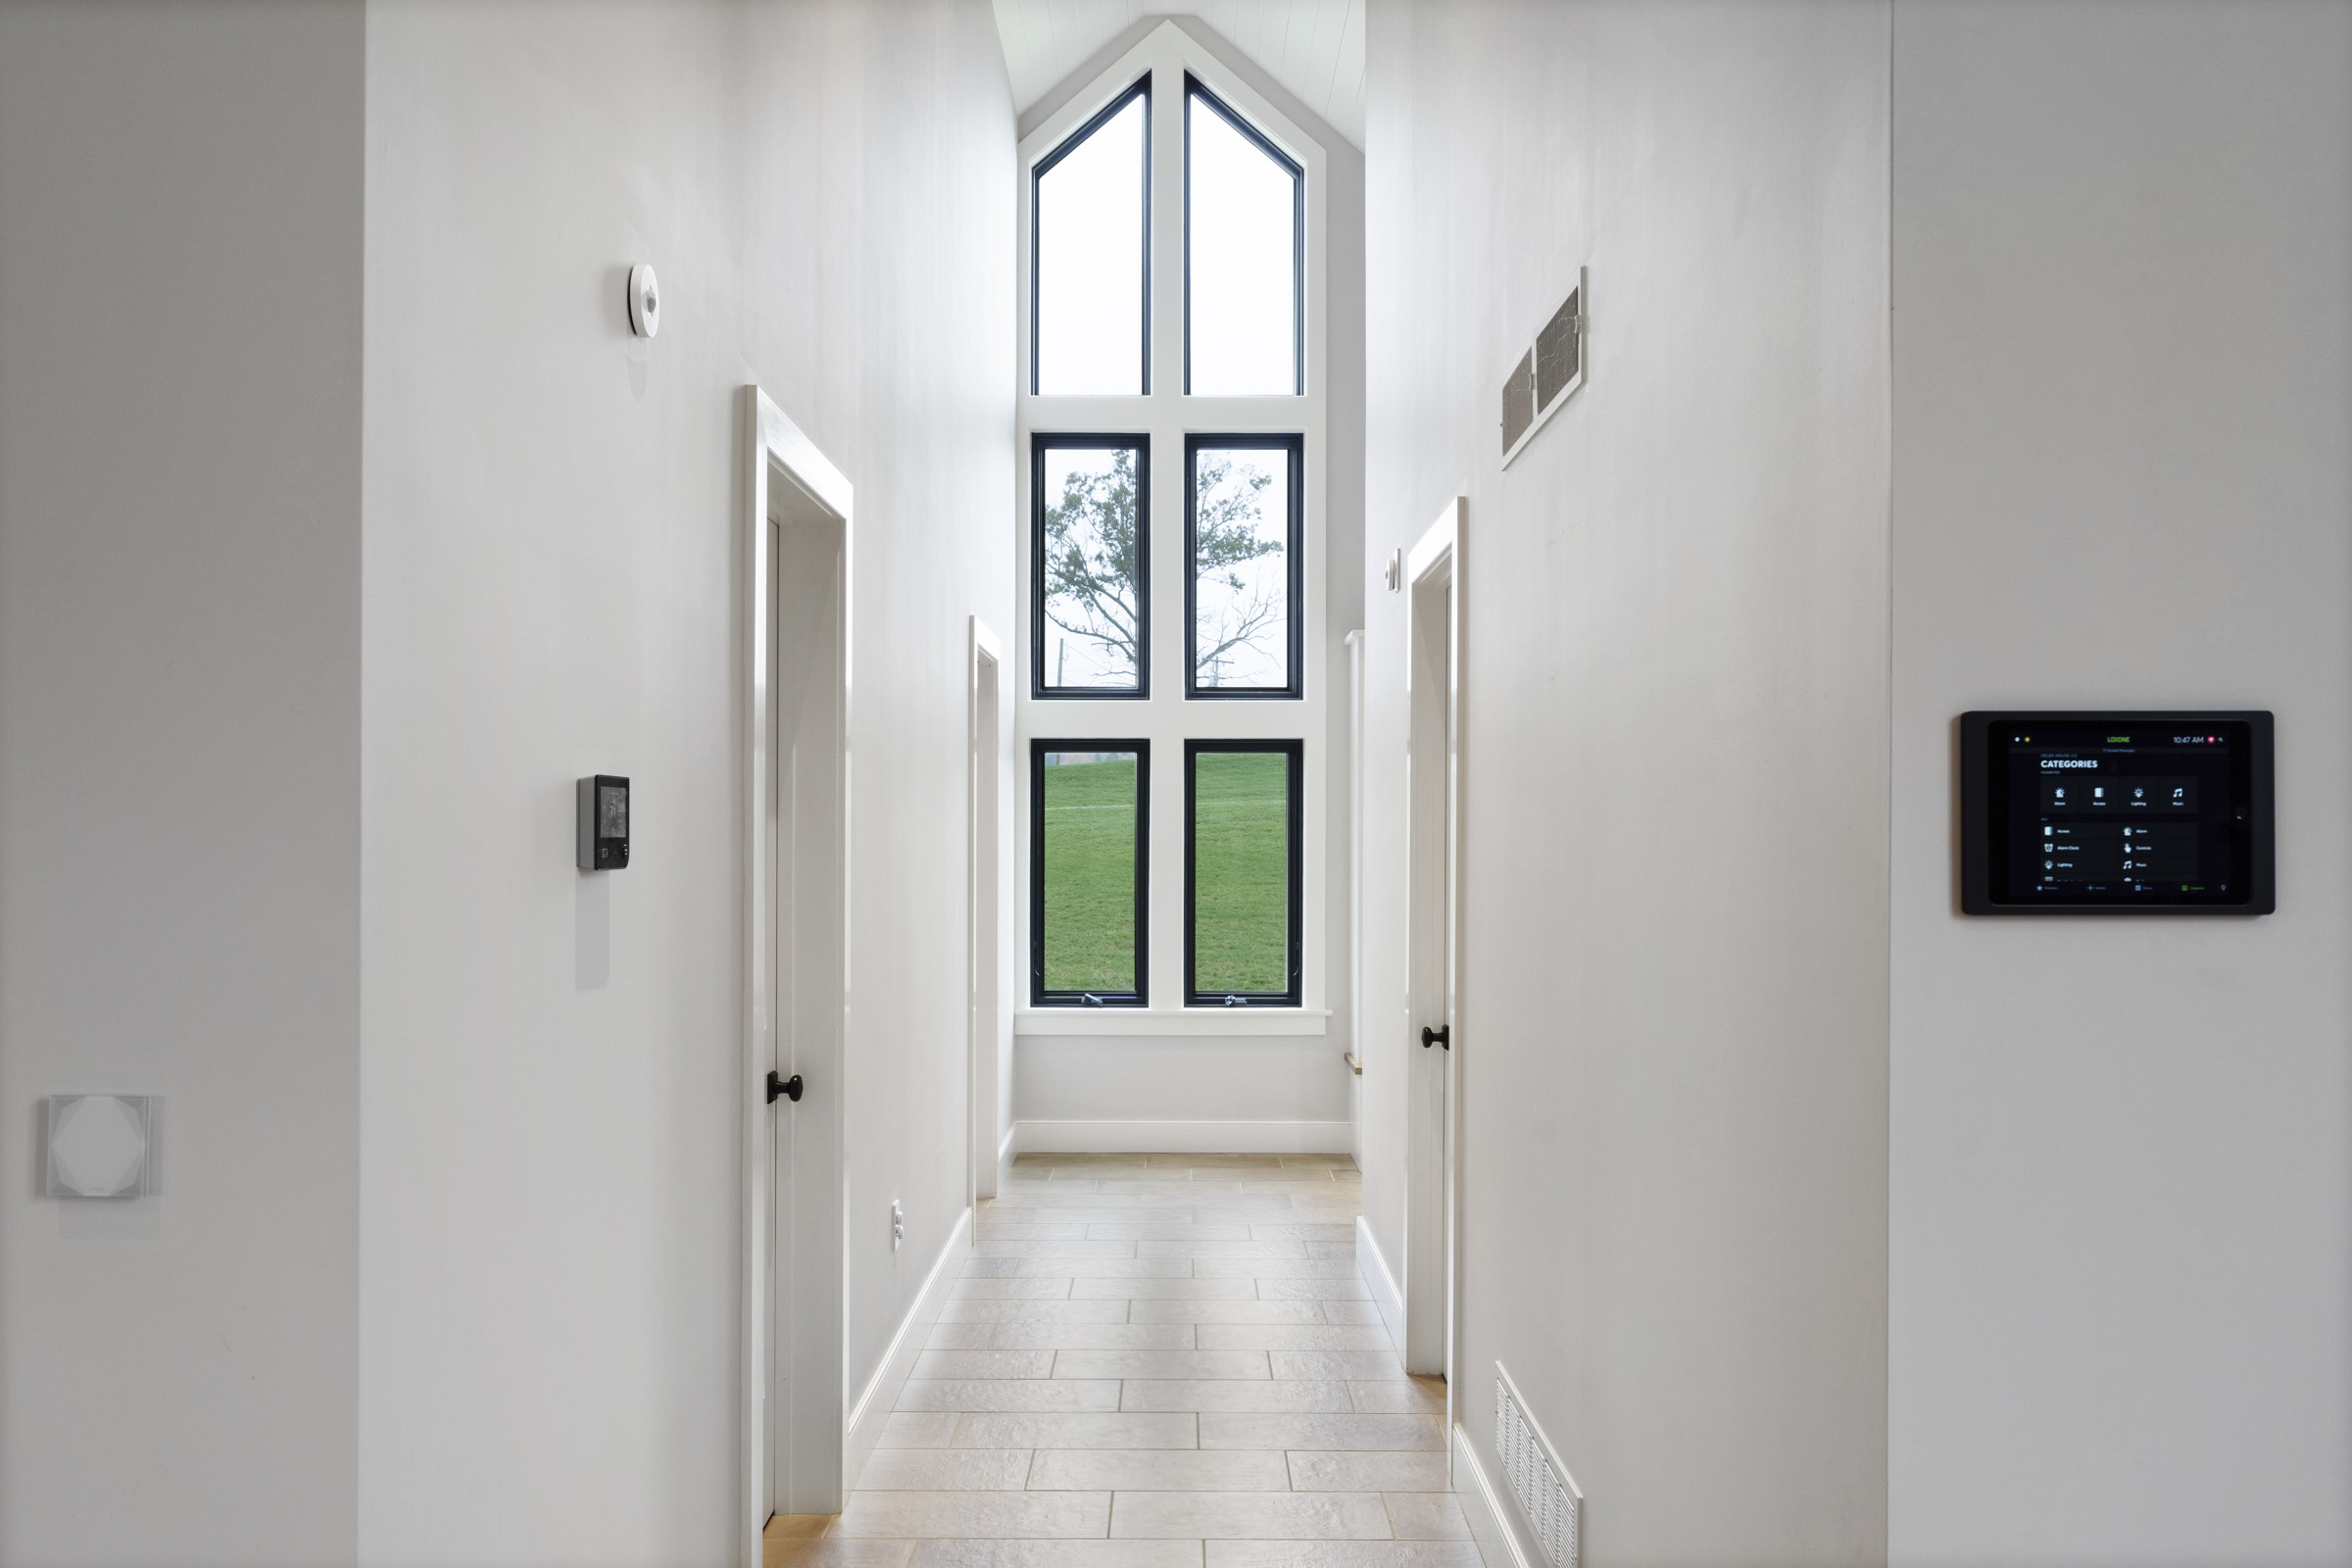 Hallway with smart home control products